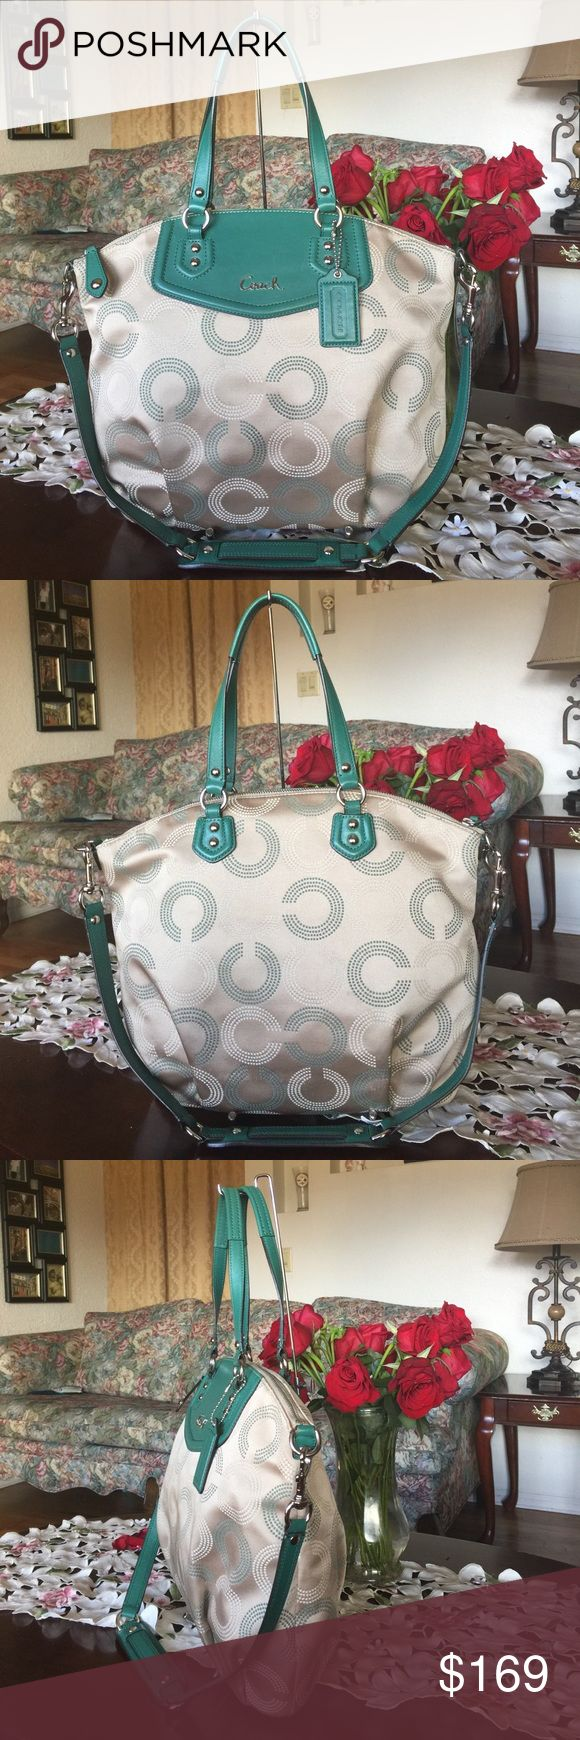 "Coach Ashley Dotted OP ART North South Satchel Coach  25183 Ashley Dotted OP ART North South Satchel ,retail: $458 ,color:Green/white/khaki with silver tone hardware..this bag is used but in great condition..from smoke/pet free home..100% authentic!!!  Dotted OP ART  fabric with leather trim Inside zip, cell phone and multifunction pockets Zip-top closure, fabric lining Double leather straps 6"" drop Detachable strap with 14"" drop for shoulder  Measurement: (approx) 15"" (L) x 13"" (H) center x…"